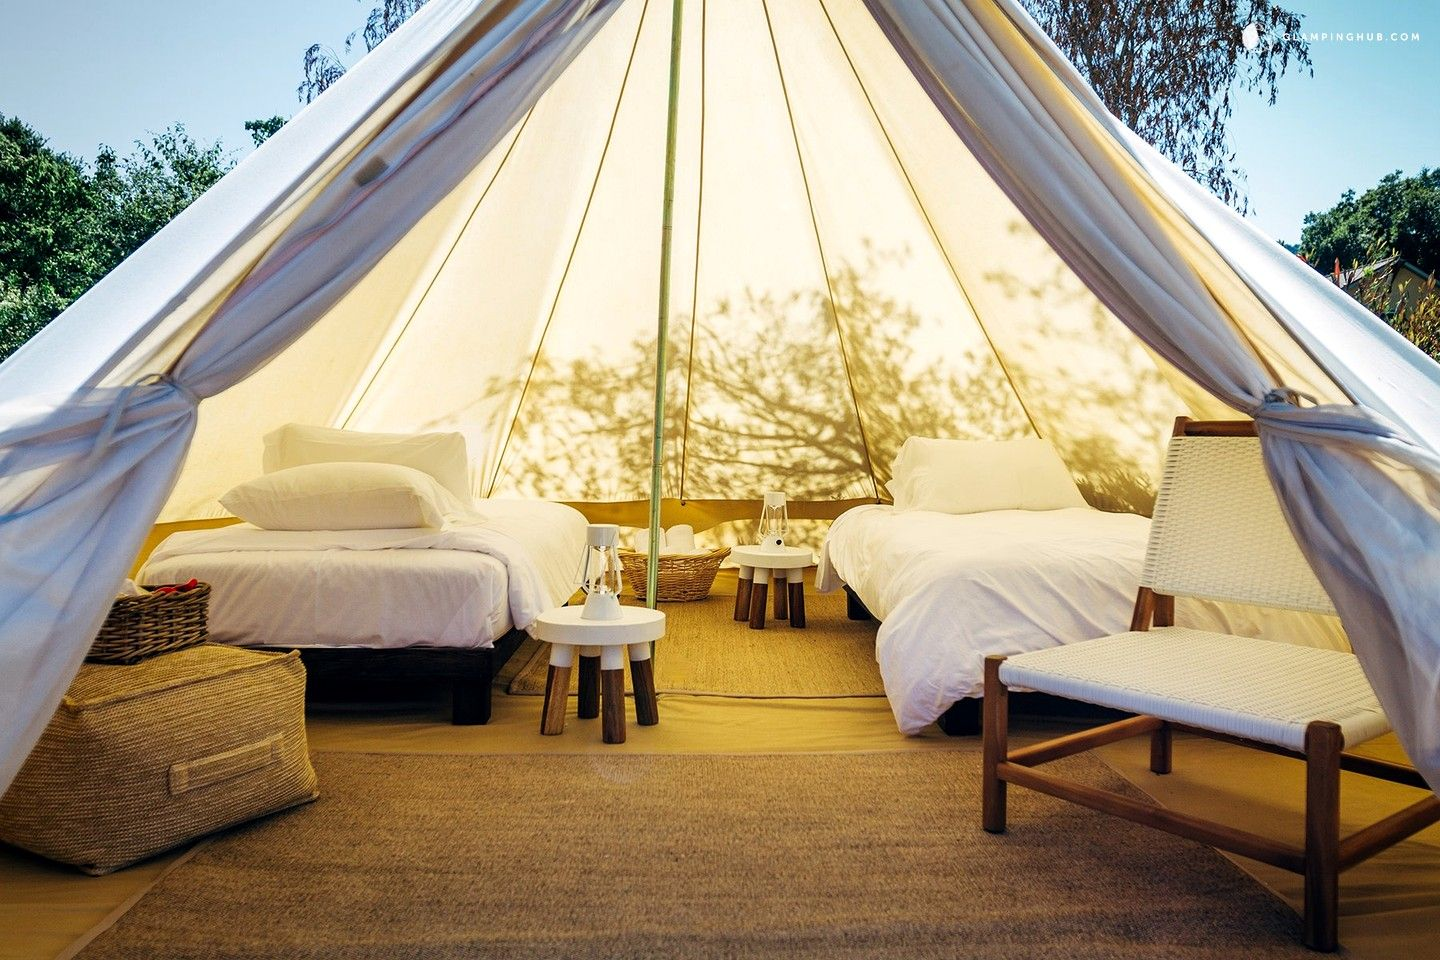 Deluxe Bell Tent Yurt Rentals With Pool At Country Retreat Near